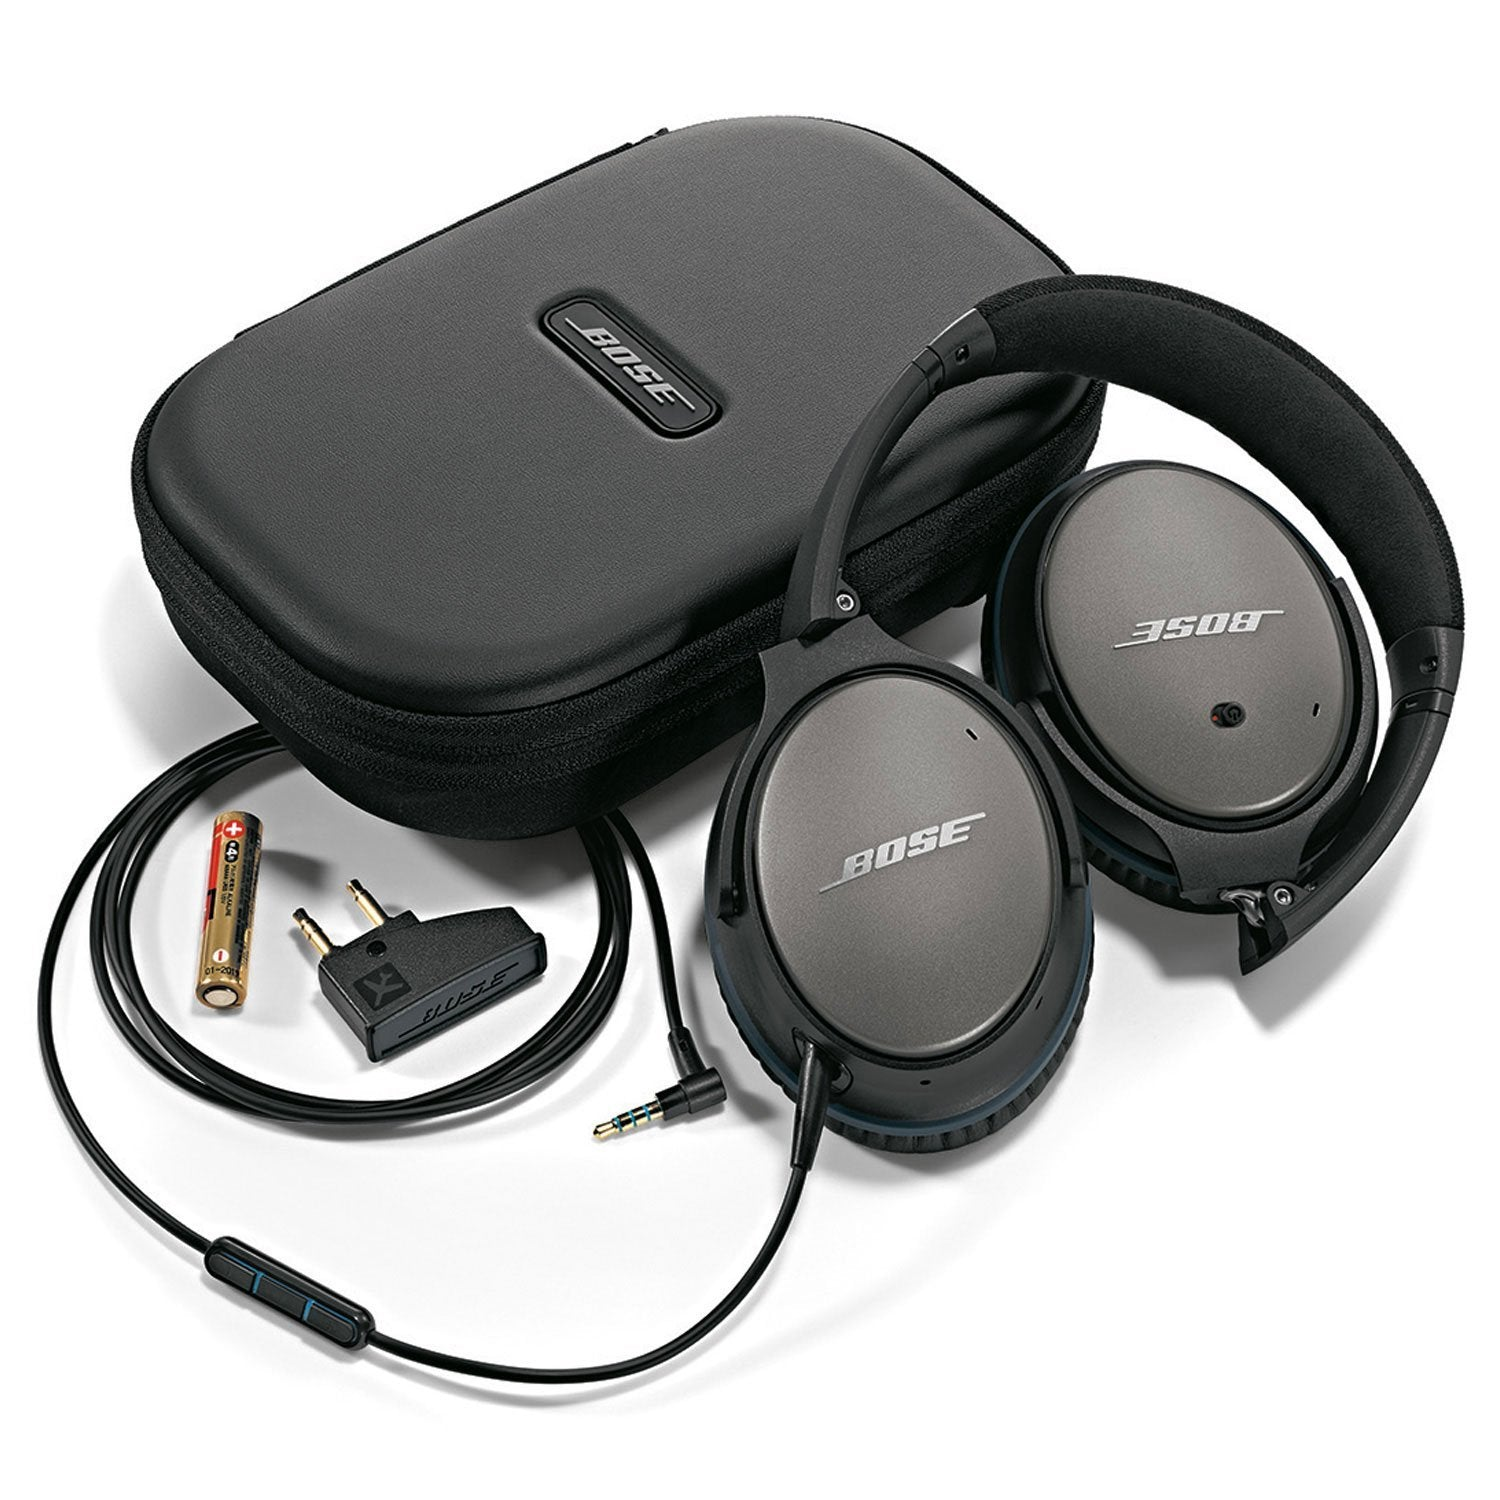 f05a03f0c5e Bose QuietComfort 25 Acoustic Noise Cancelling Headphones for Apple devices  - Black (wired, 3.5mm)